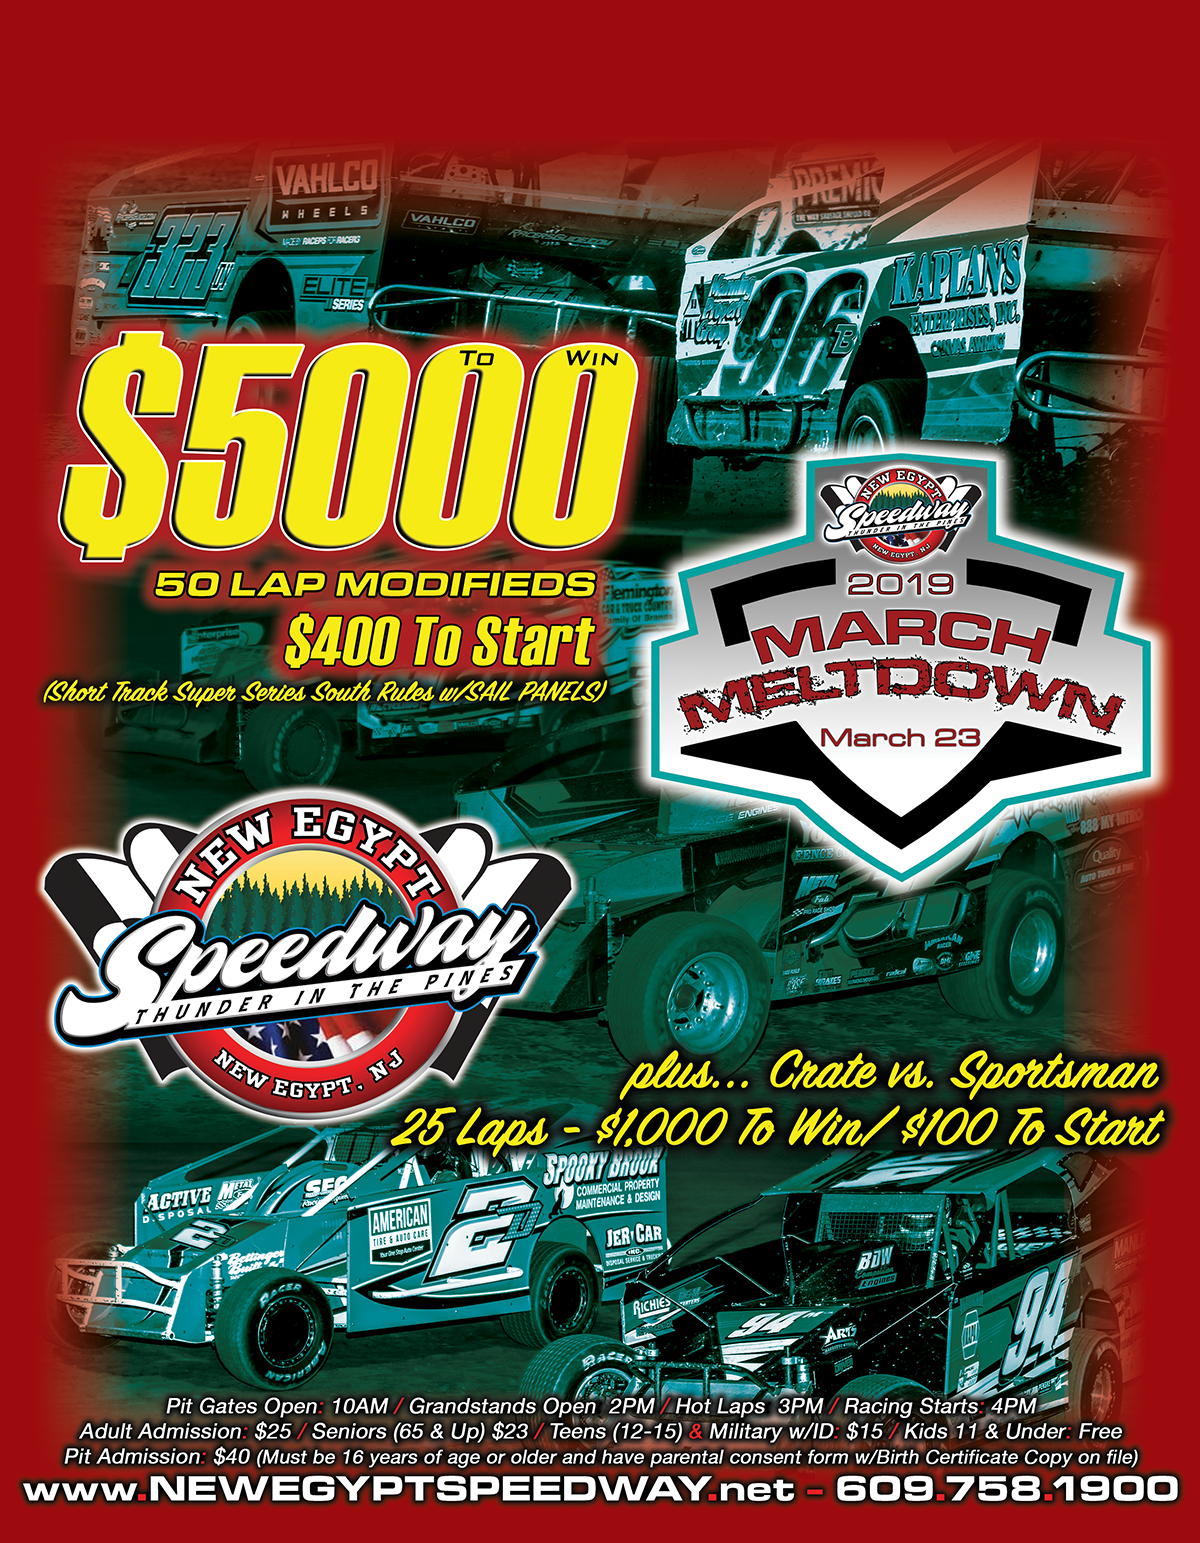 The March Meltdown will be held on Saturday March 23rd at New Egypt Speedway.